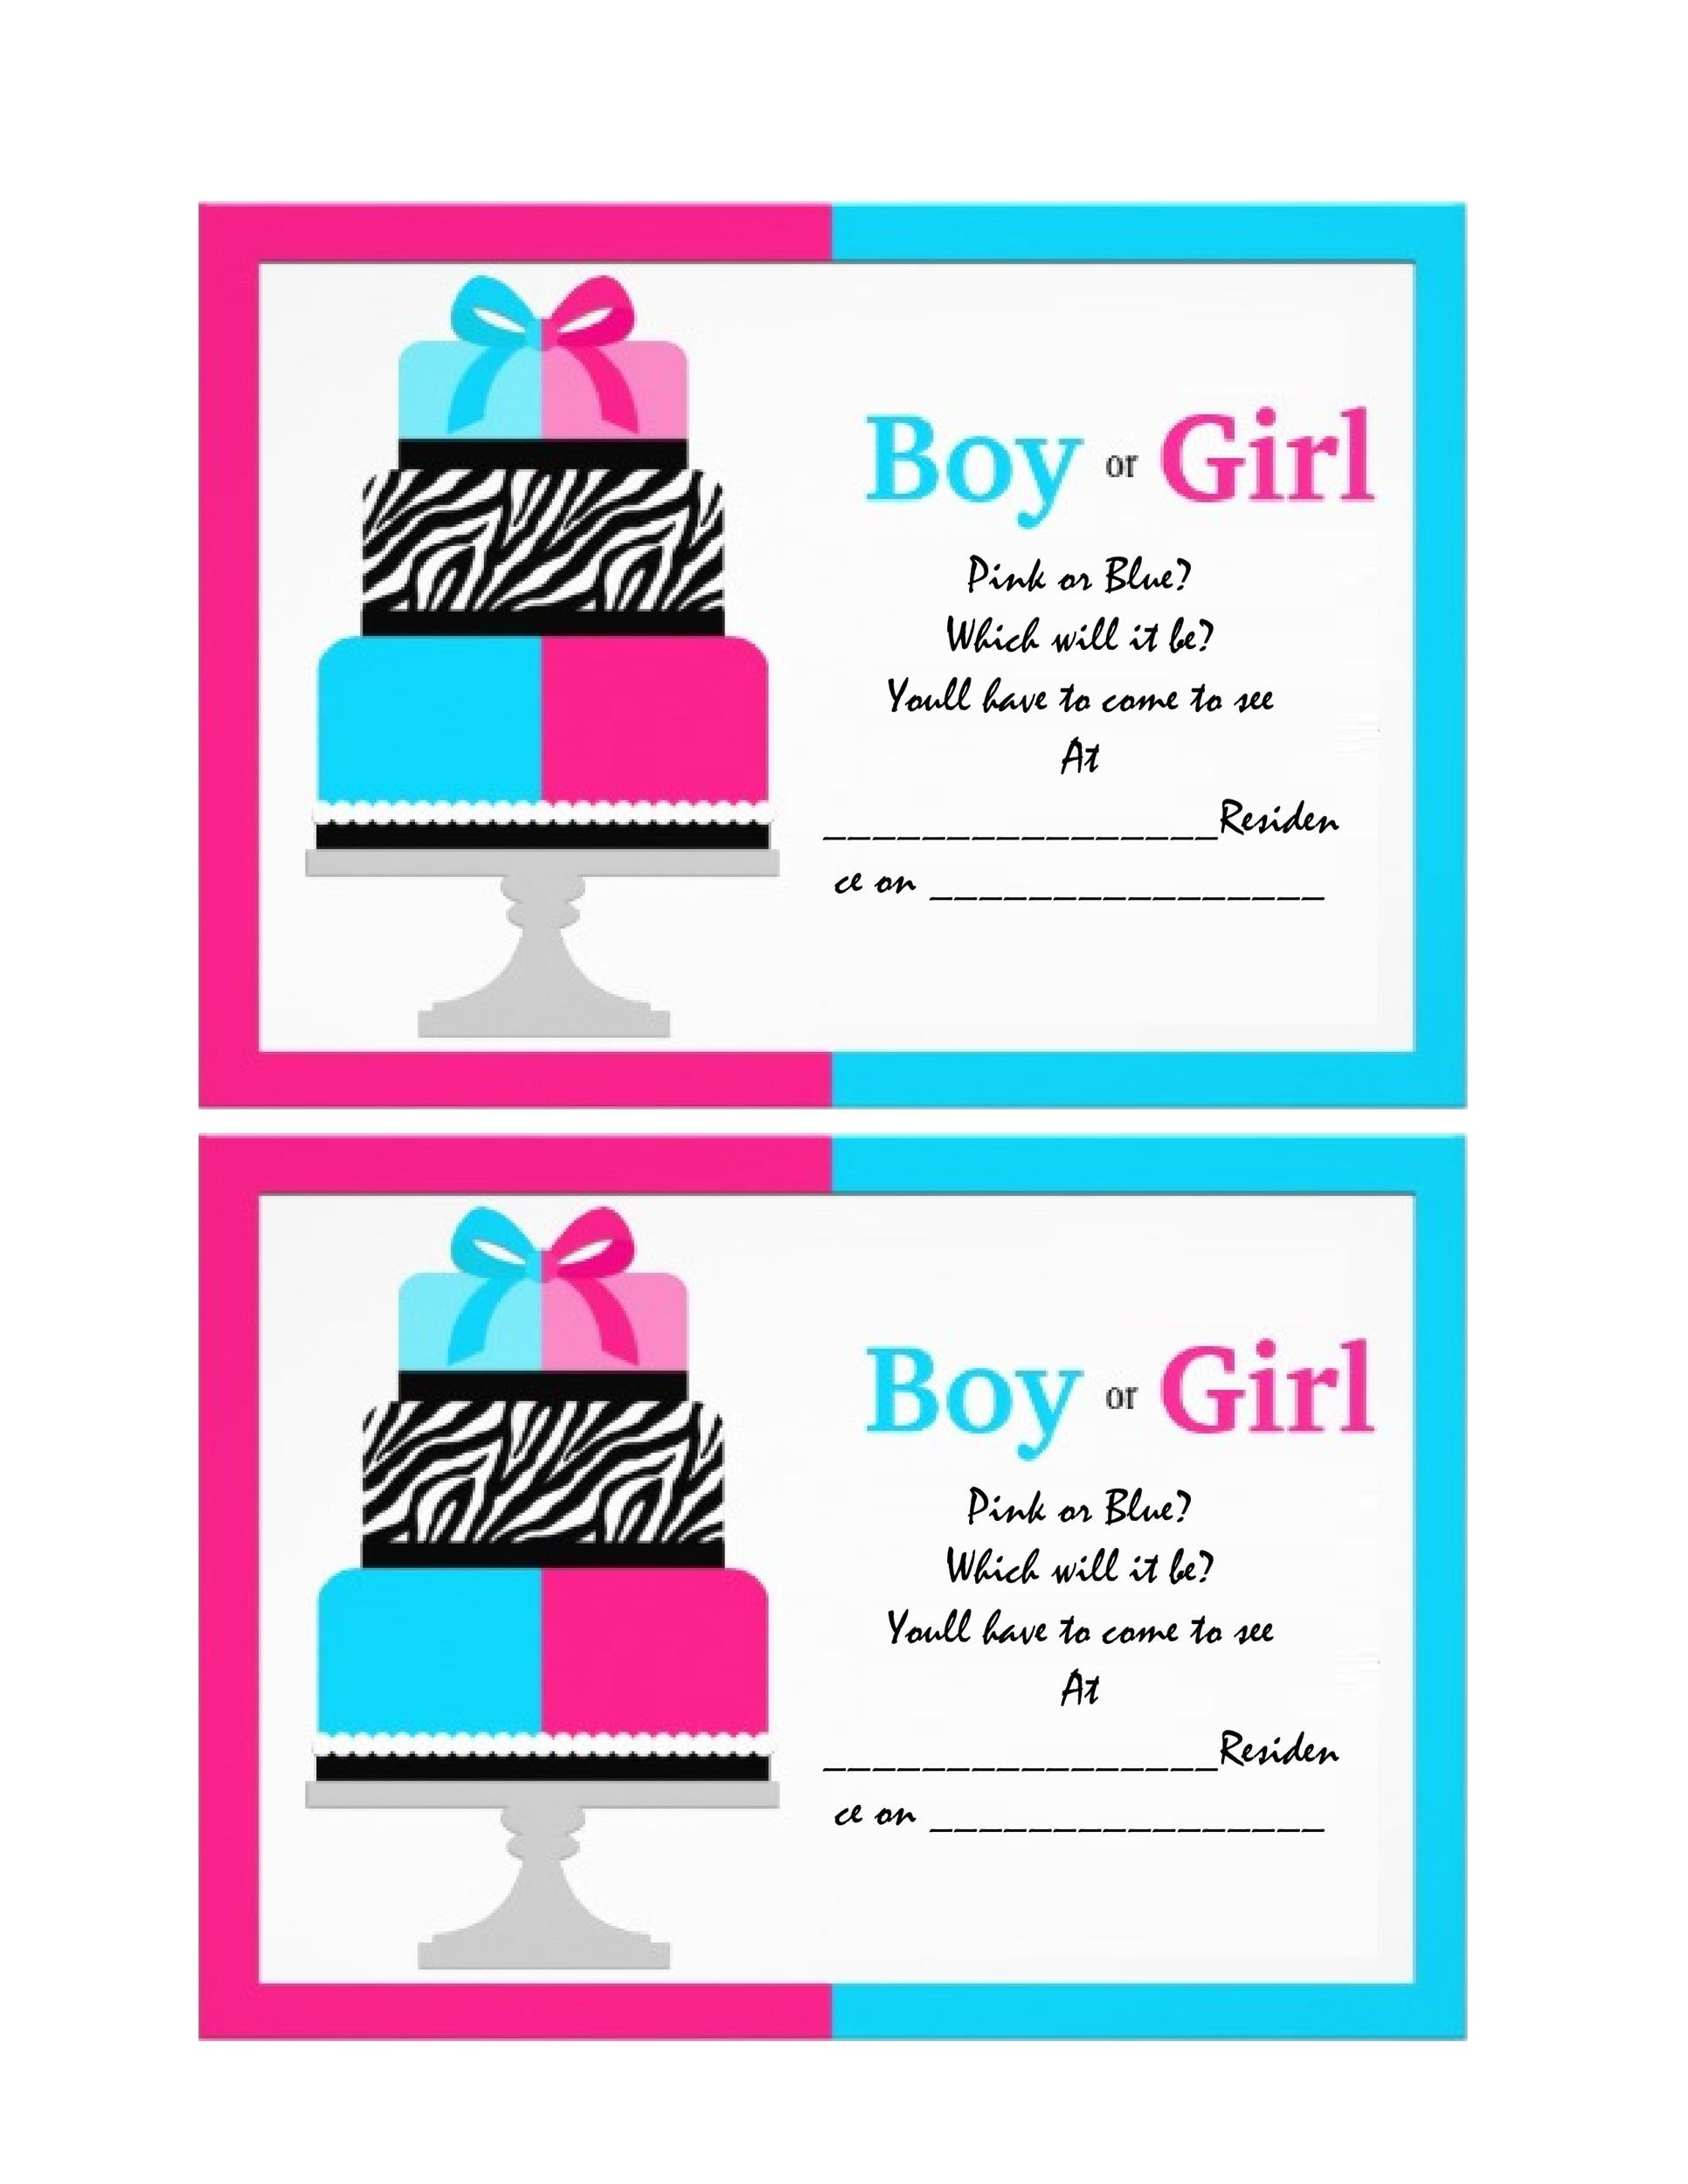 photograph regarding Free Printable Gender Reveal Invitations known as 17 Totally free Gender Explain Invitation Templates ᐅ Template Lab